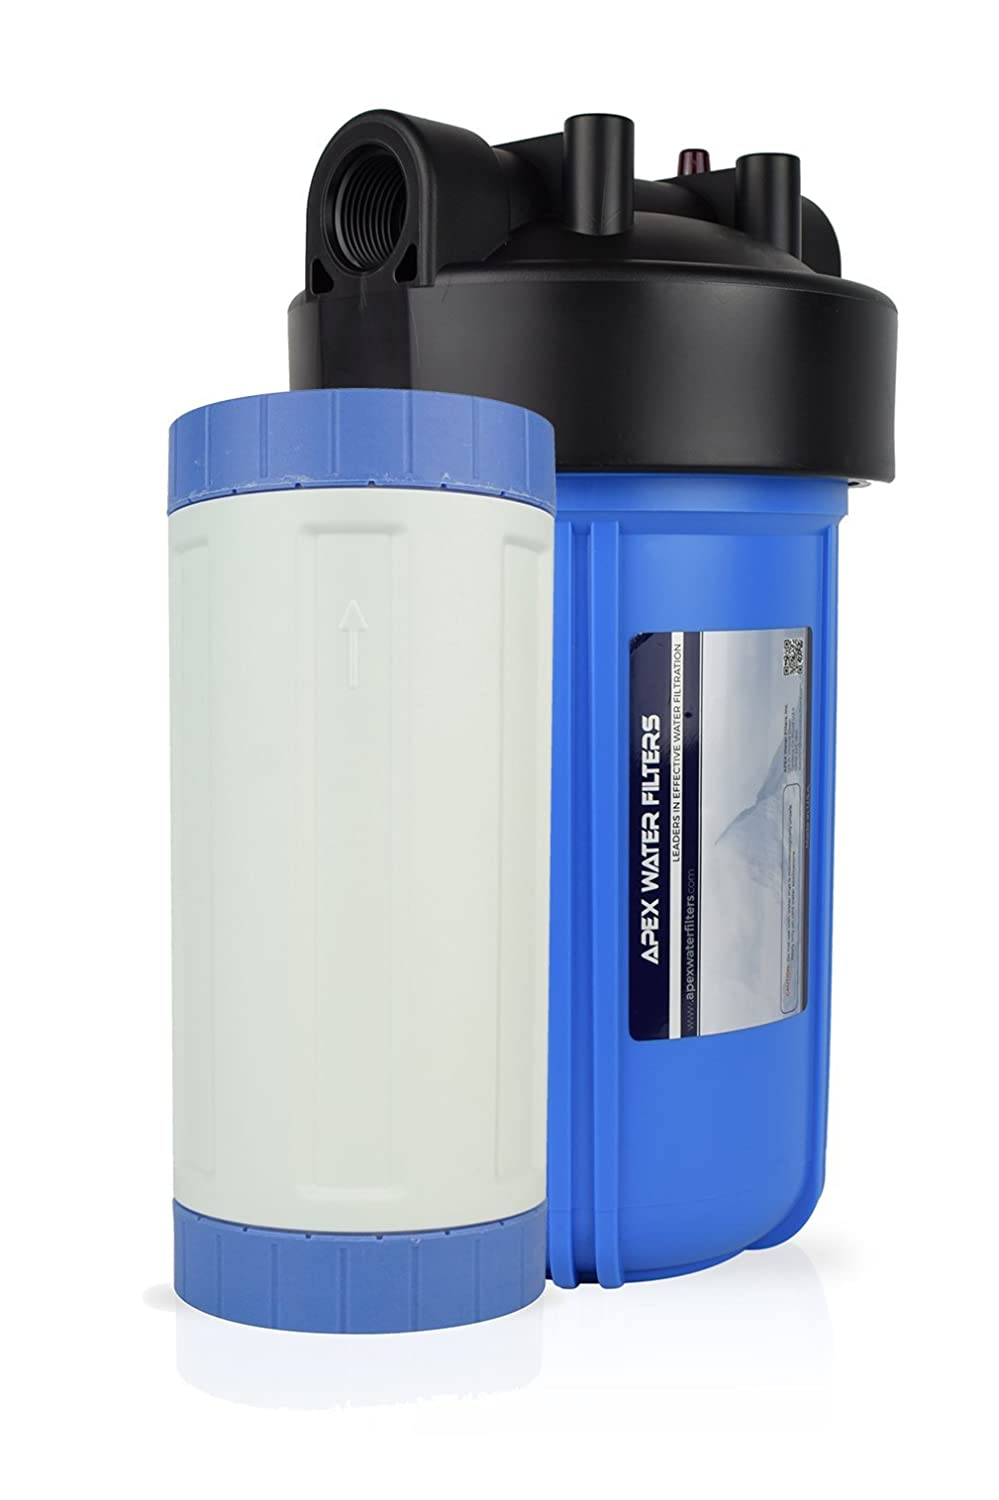 APEX EZ Whole House Water Filter System (2300)